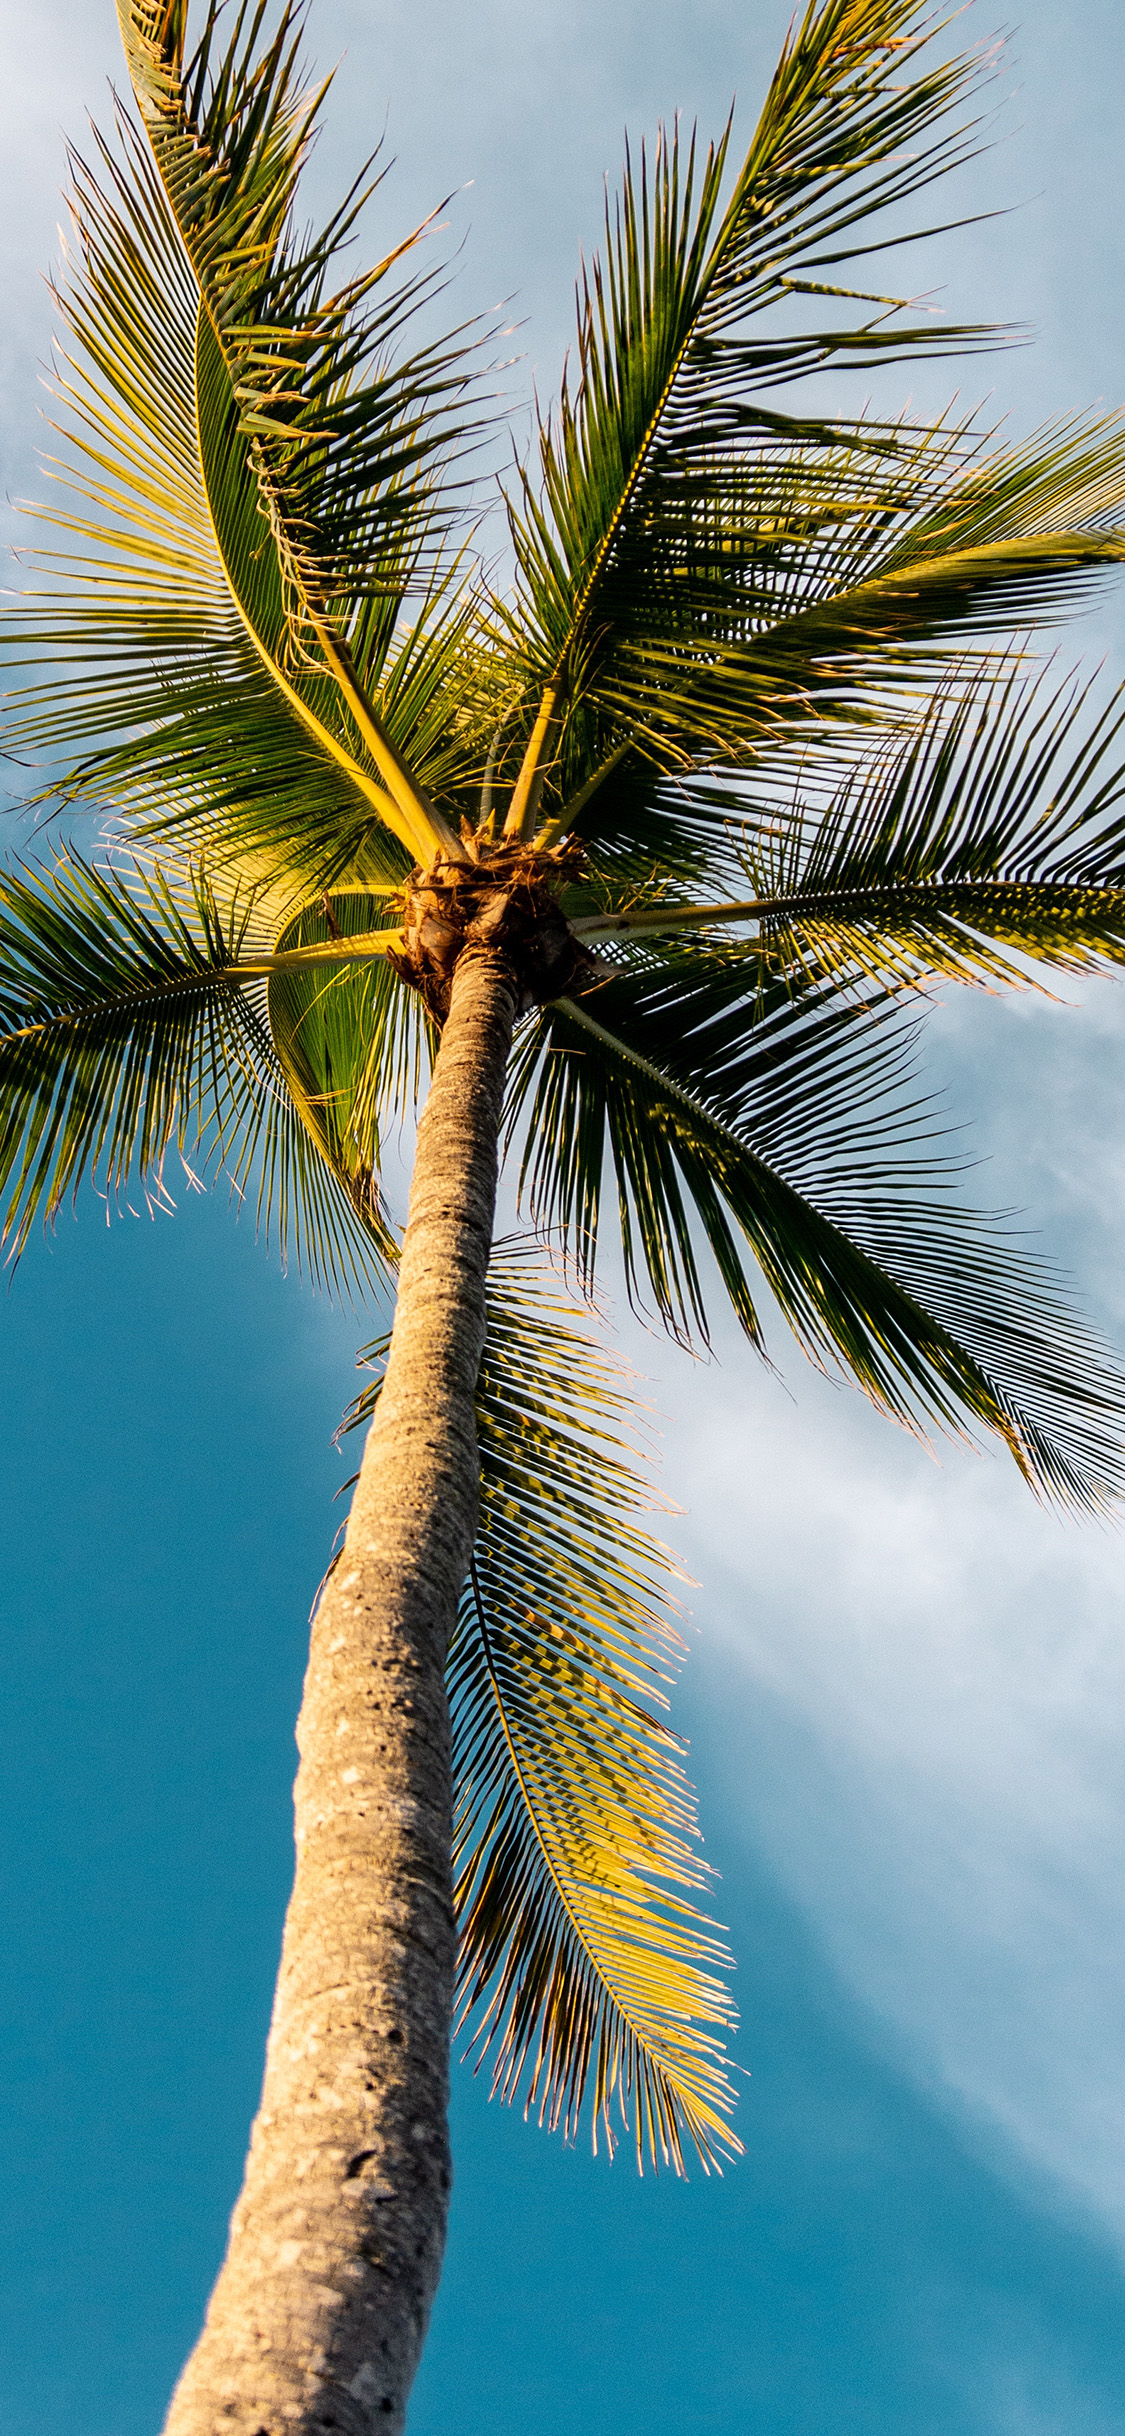 Iphonexpapers Com Iphone X Wallpaper Oc46 Tree Summer Palm Sky Sunny Nature